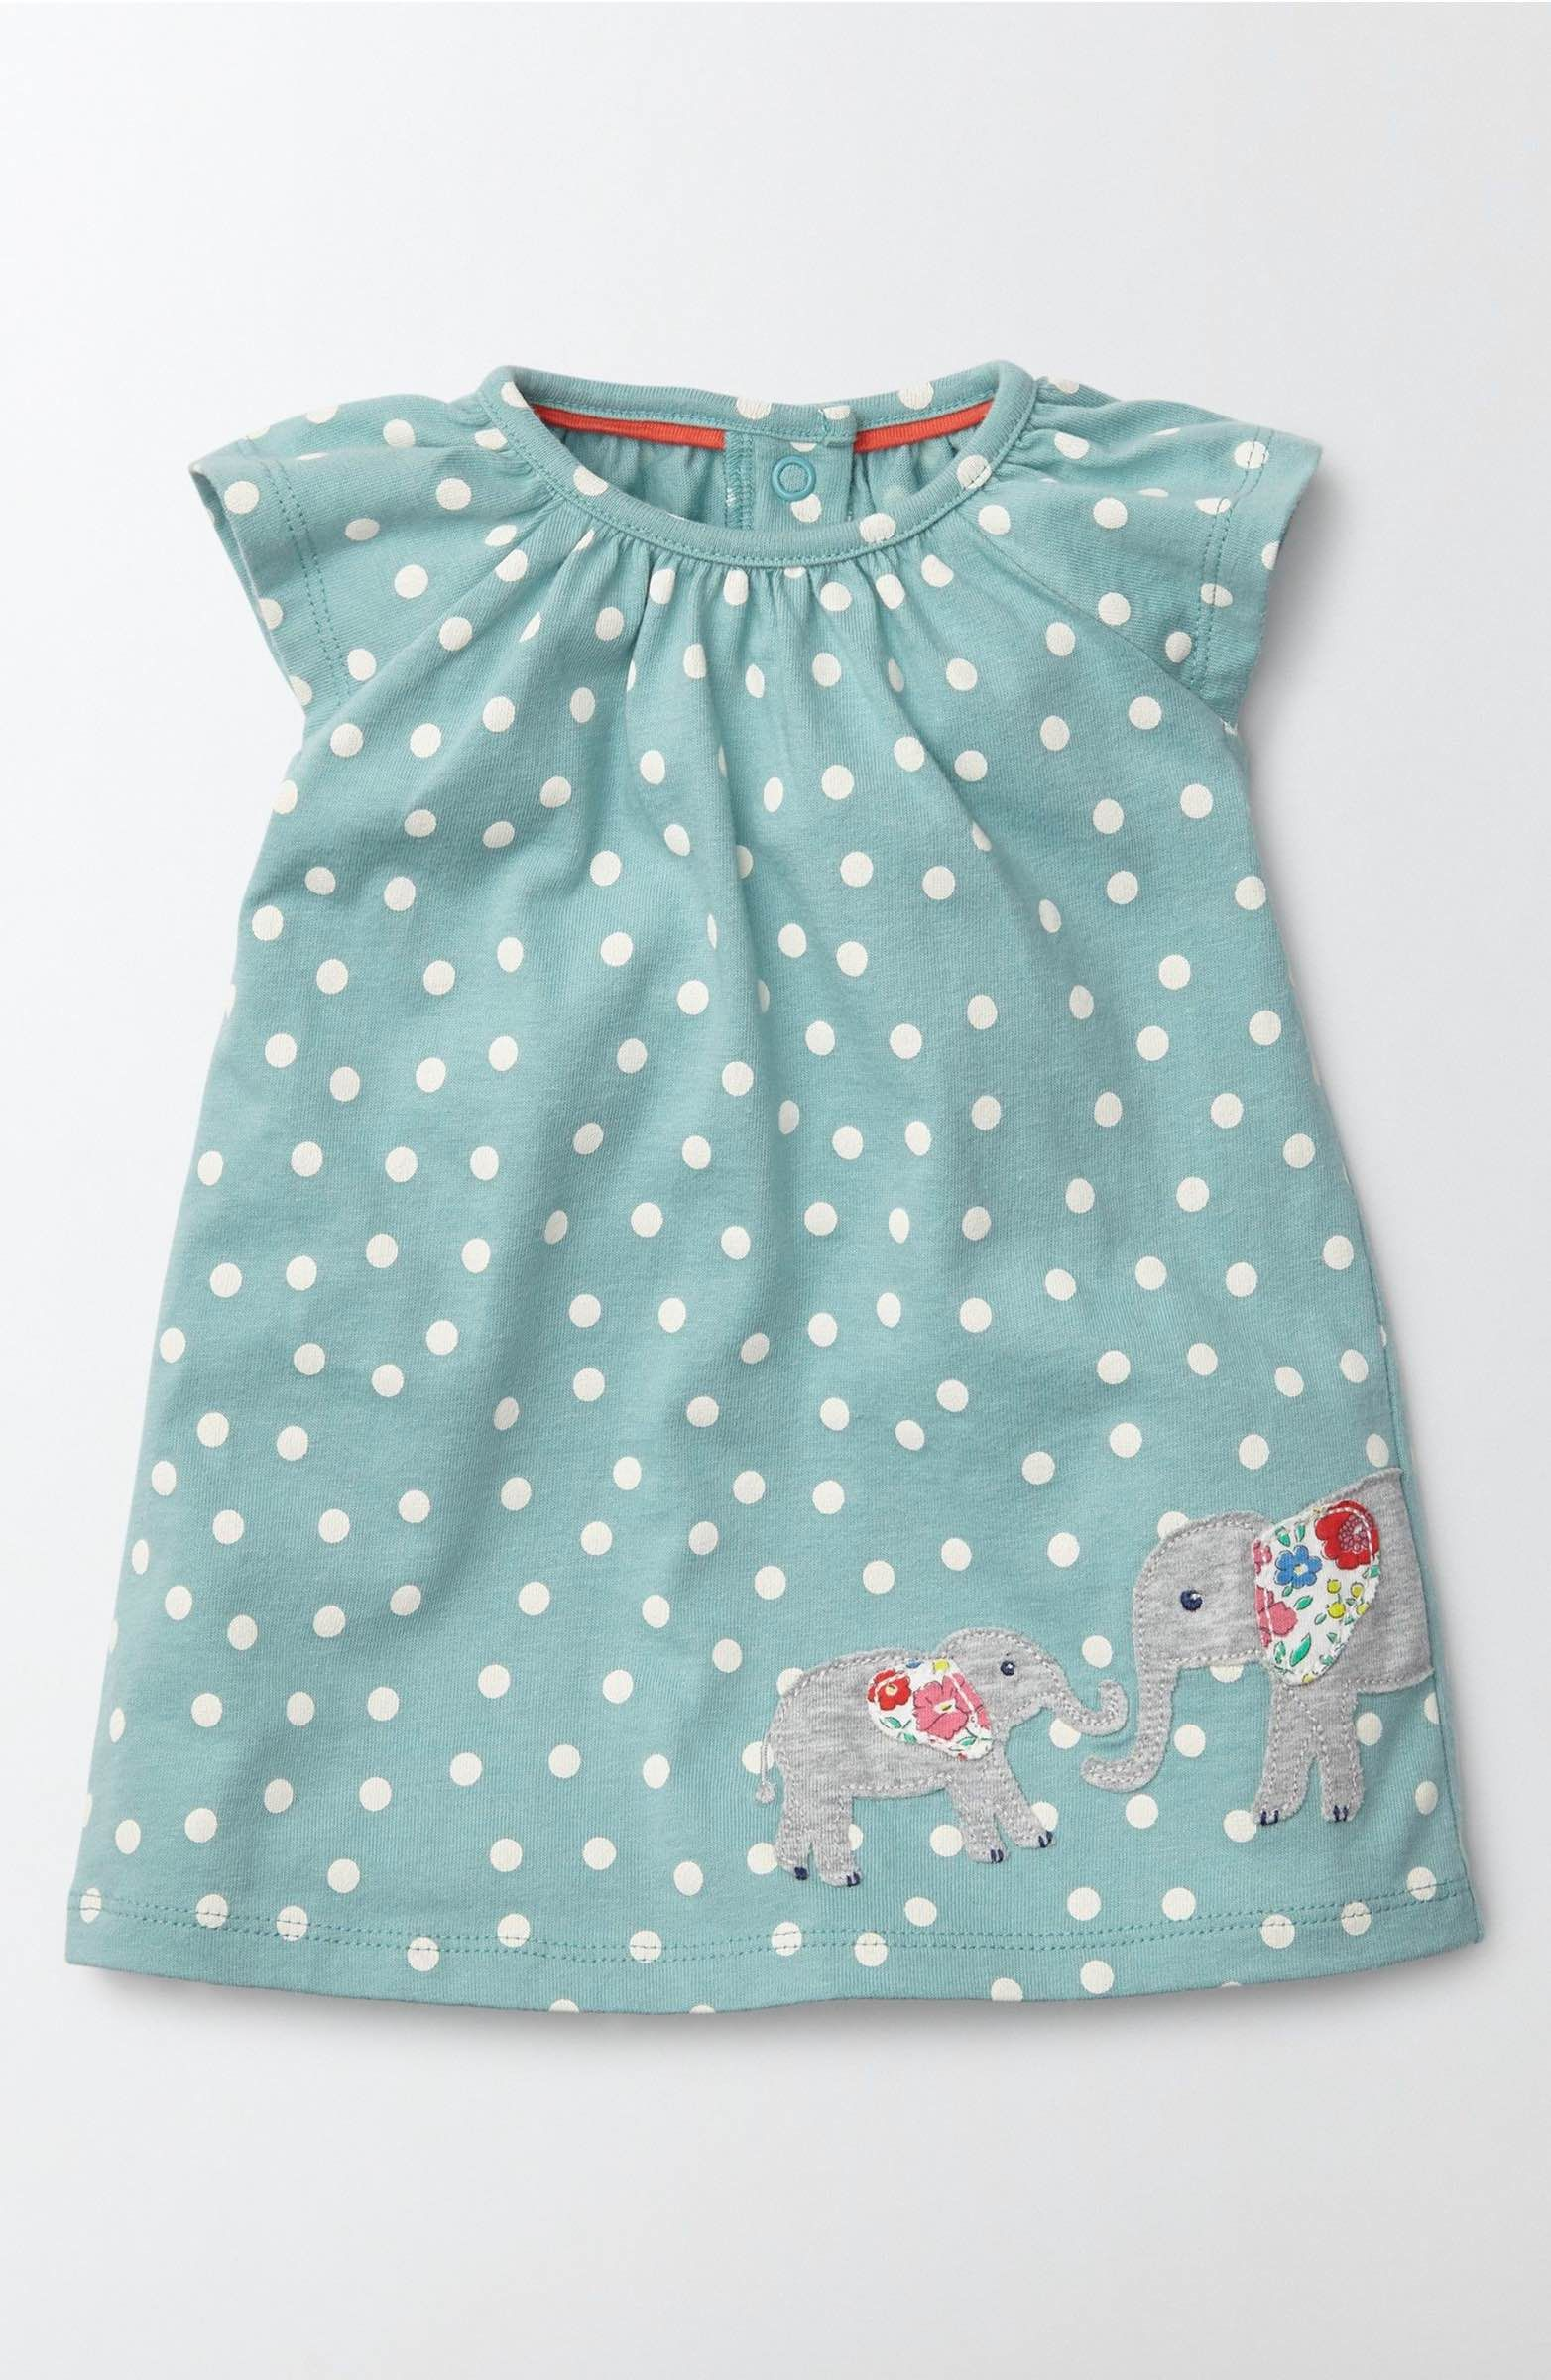 4a1422ba1 Main Image - Mini Boden Summer Appliqué Dress (Baby Girls   Toddler ...